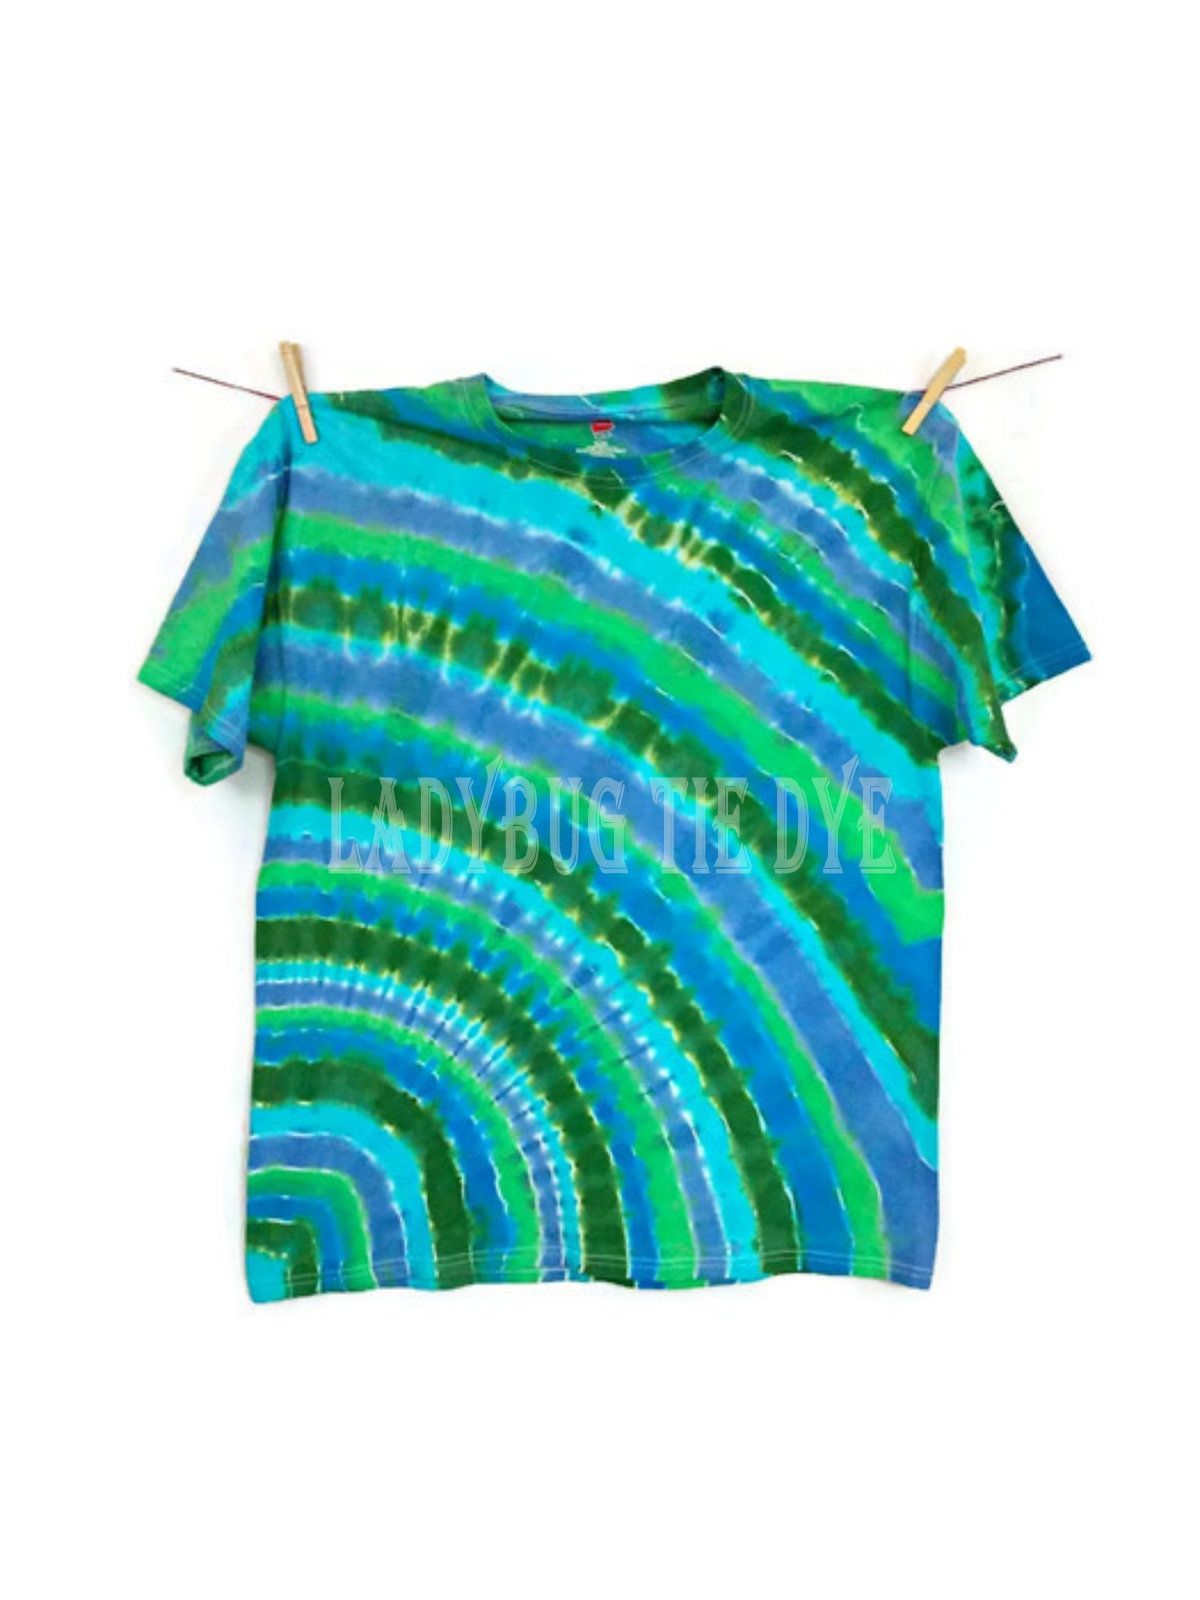 fa023db281a Blue Green Tie Dye Shirt Unisex Tie Dye Gift For Men Adult Large Fathers  Day Shirt Hippie Shirt Tie Dyed Clothing Boho Fashion Festival Tee by  LadybugTieDye ...